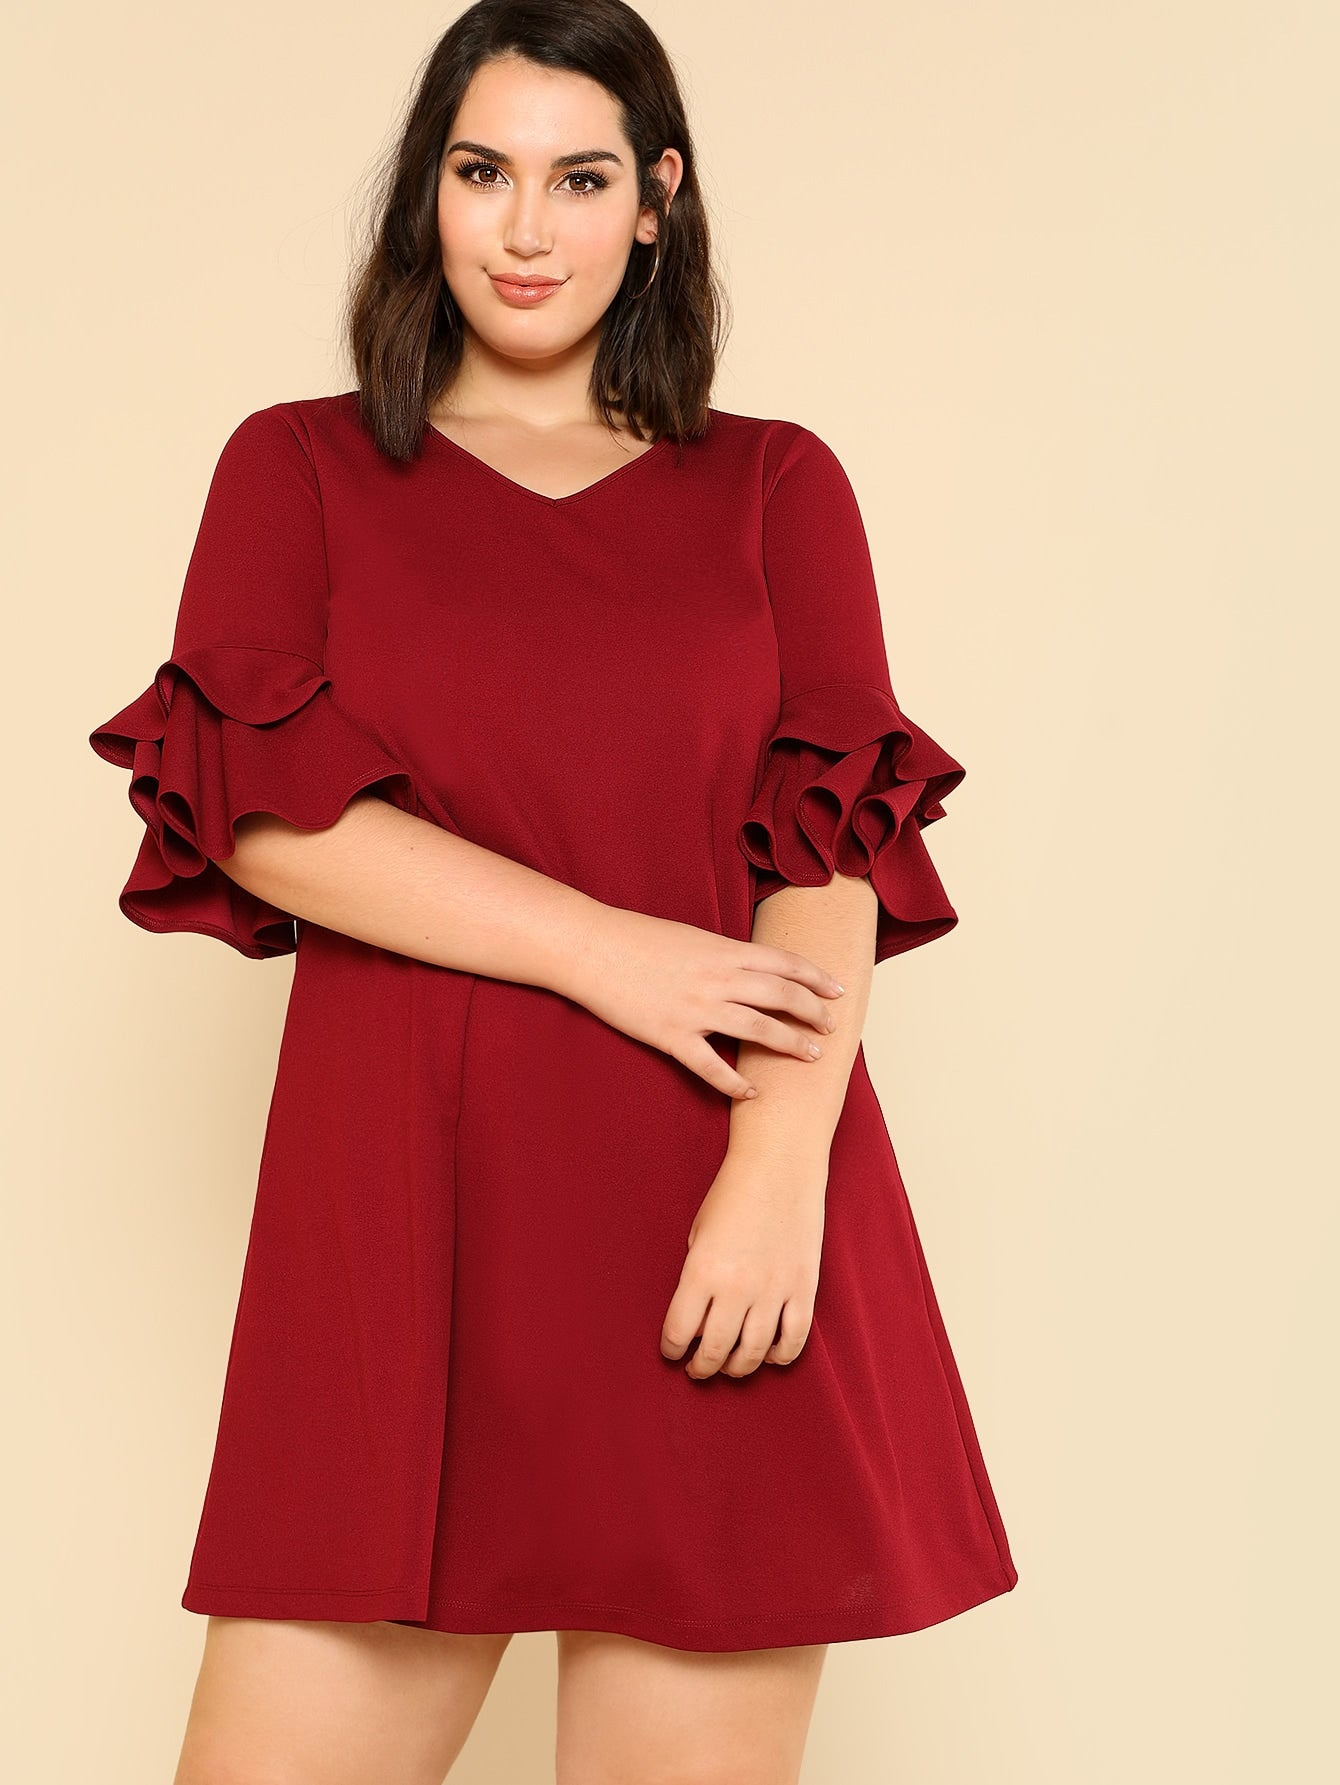 Plus Flounce Sleeve Solid Swing Dress-Sunshine's Boutique & Gifts